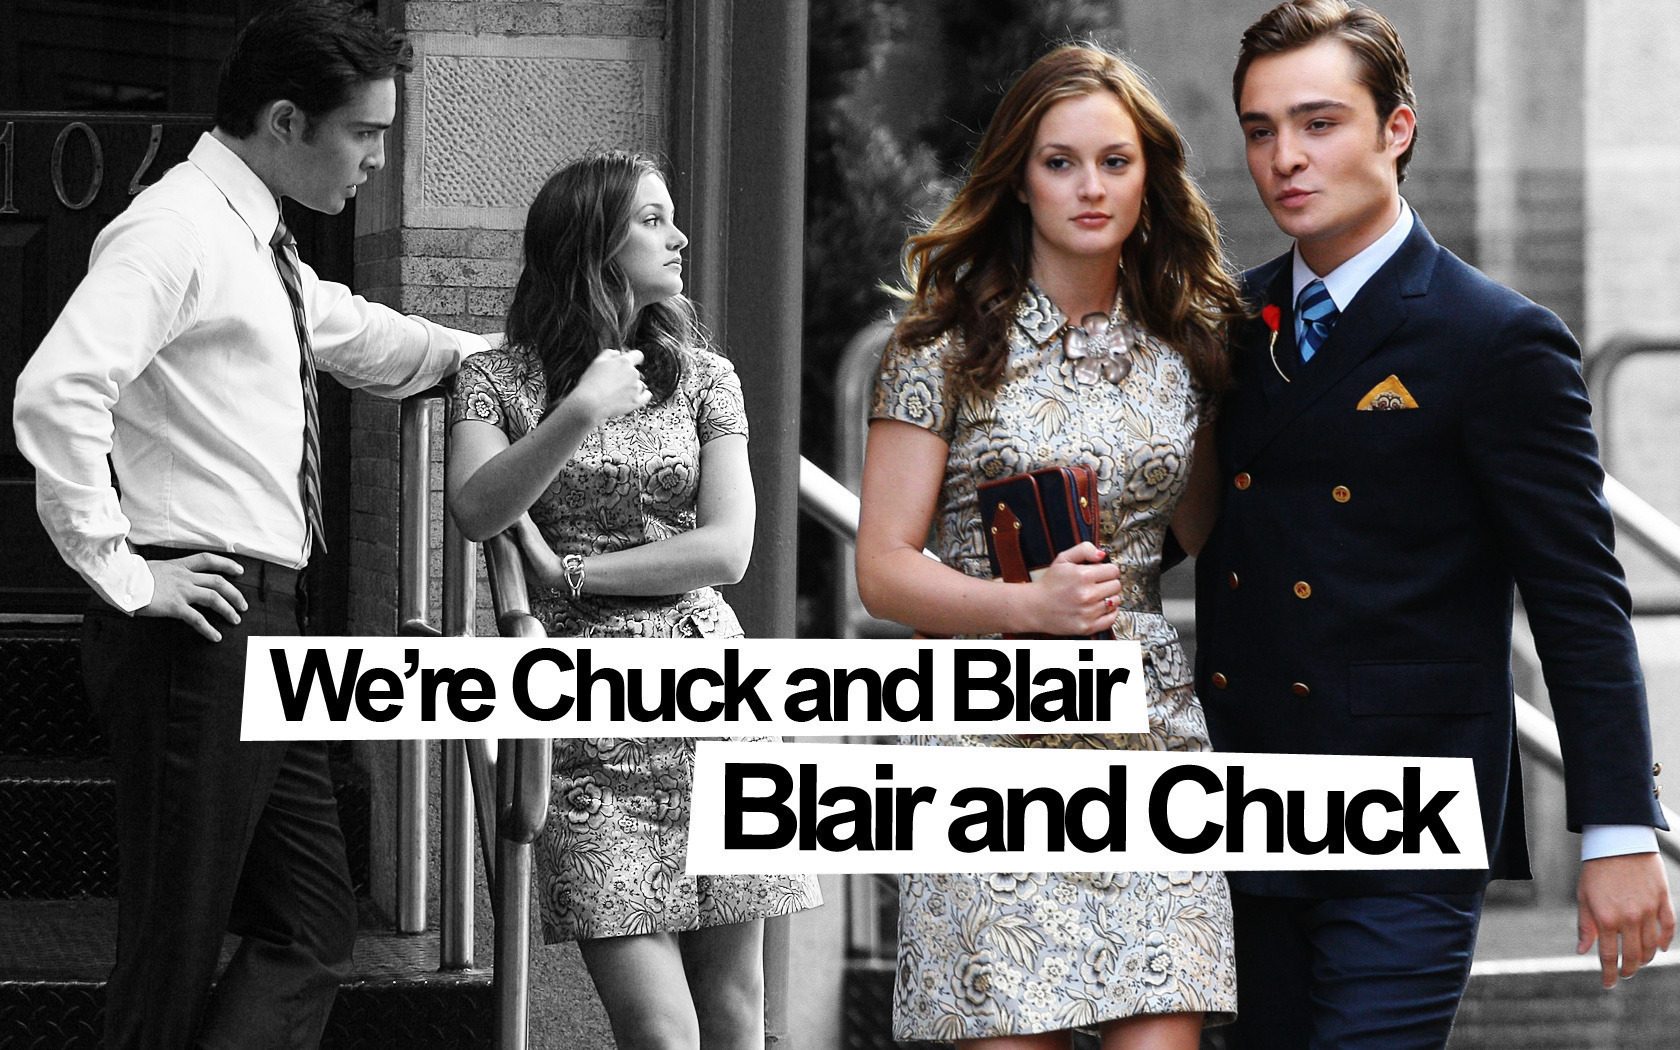 Dan and Blair vs Chuck...